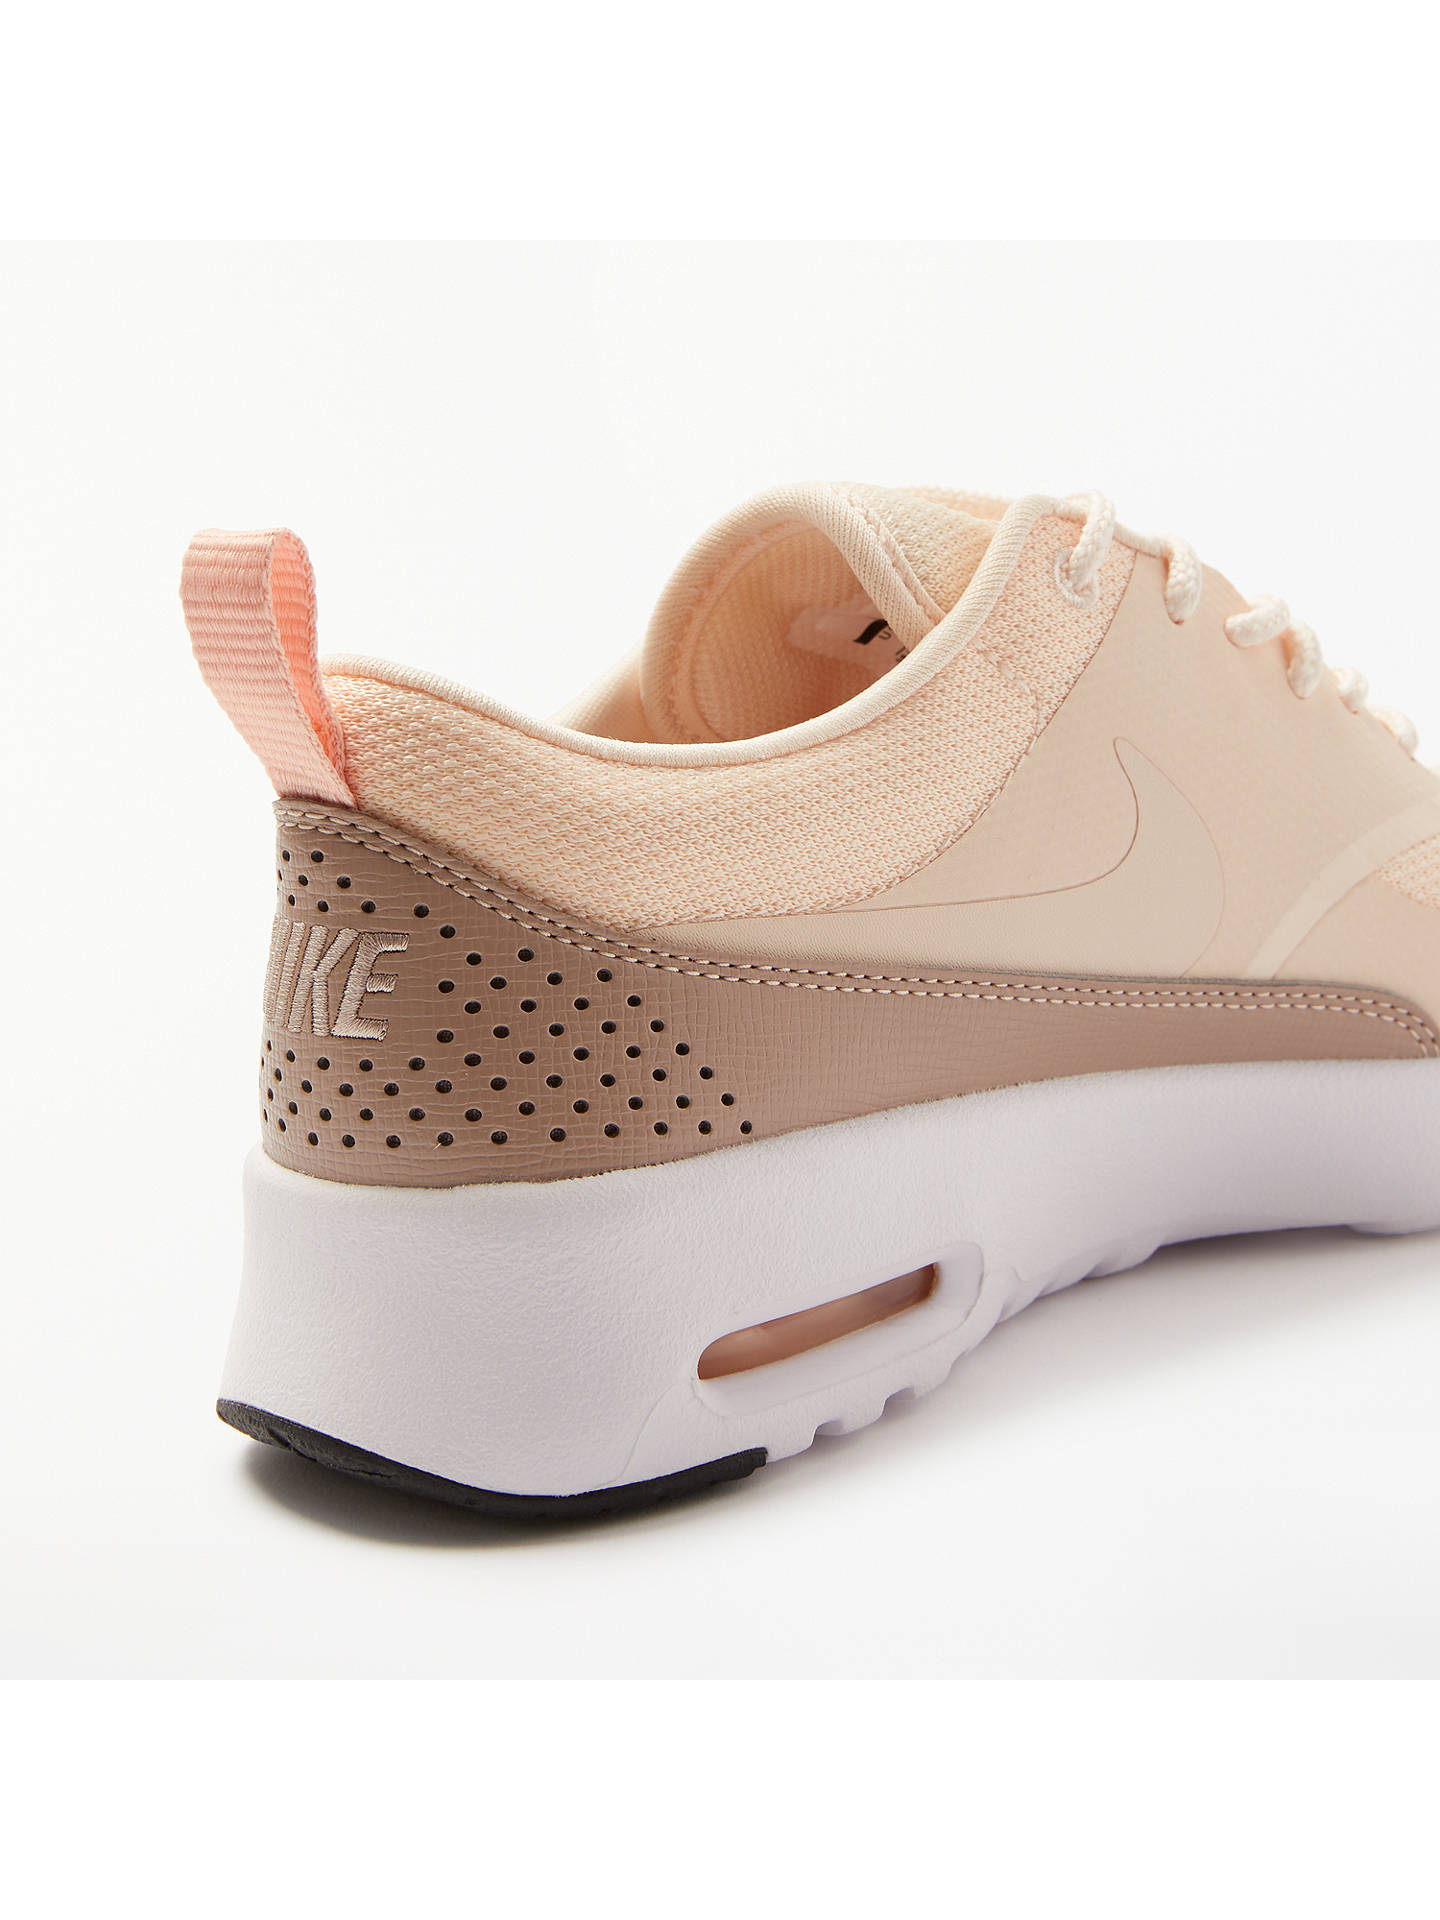 ... BuyNike Air Max Thea Women s Trainers 4e1de59fe